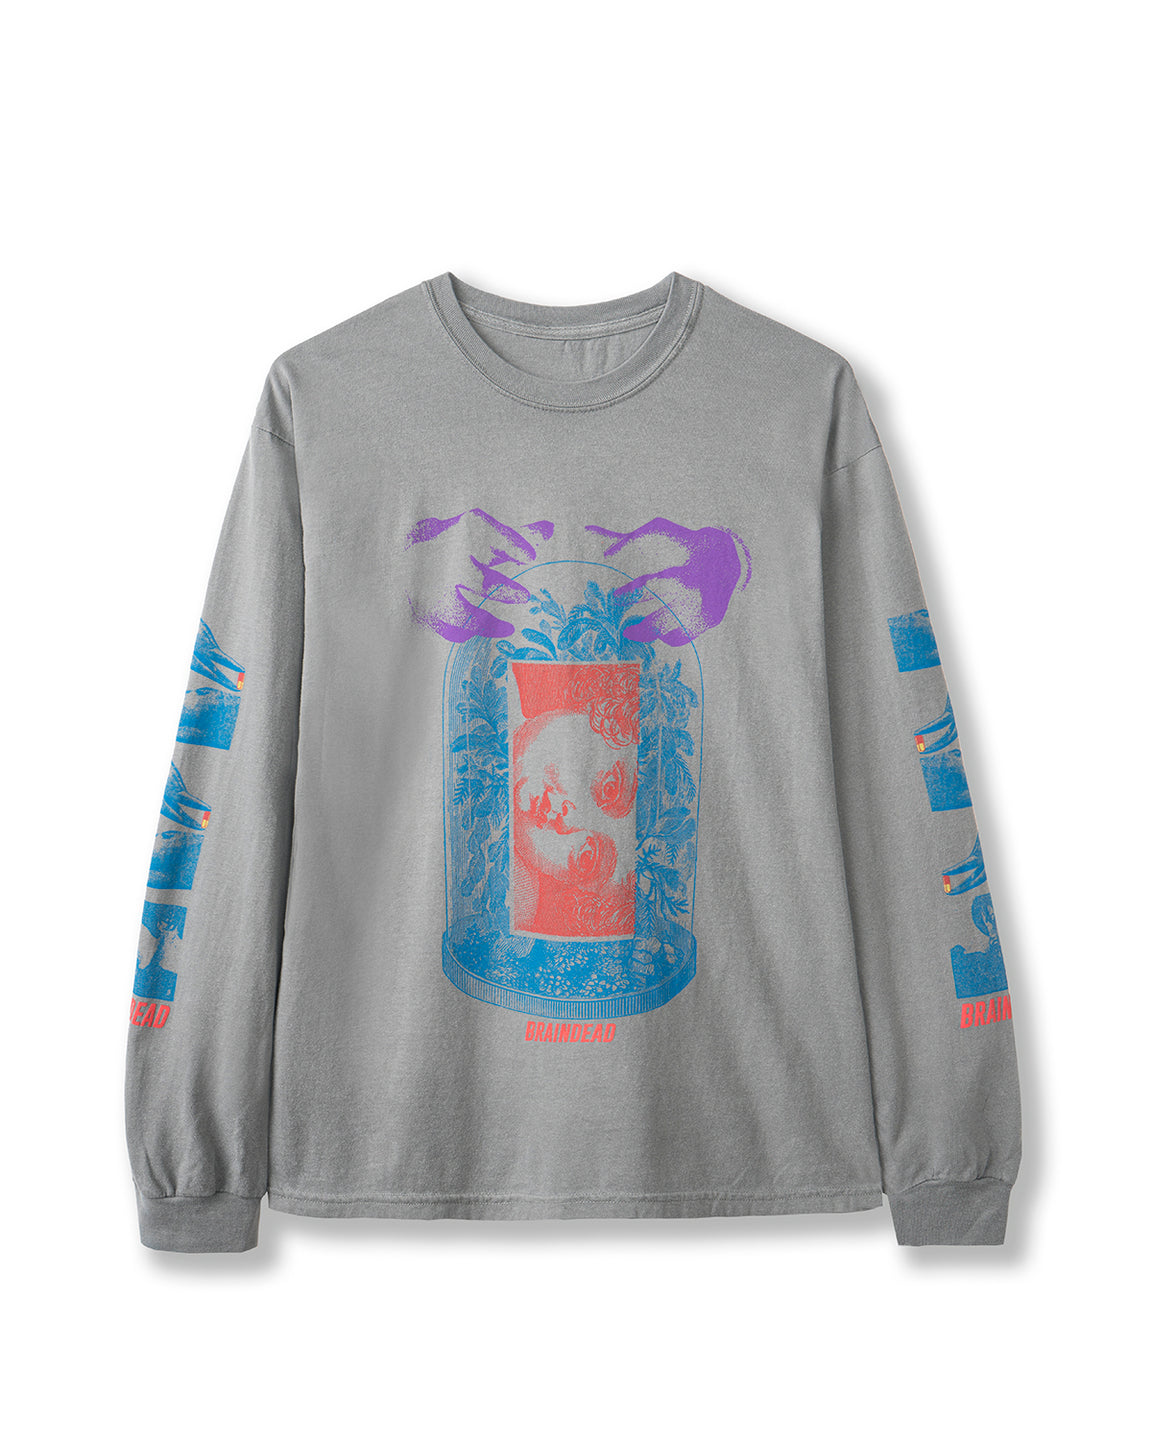 Ways of Knowing Long Sleeve T-shirt - Grey